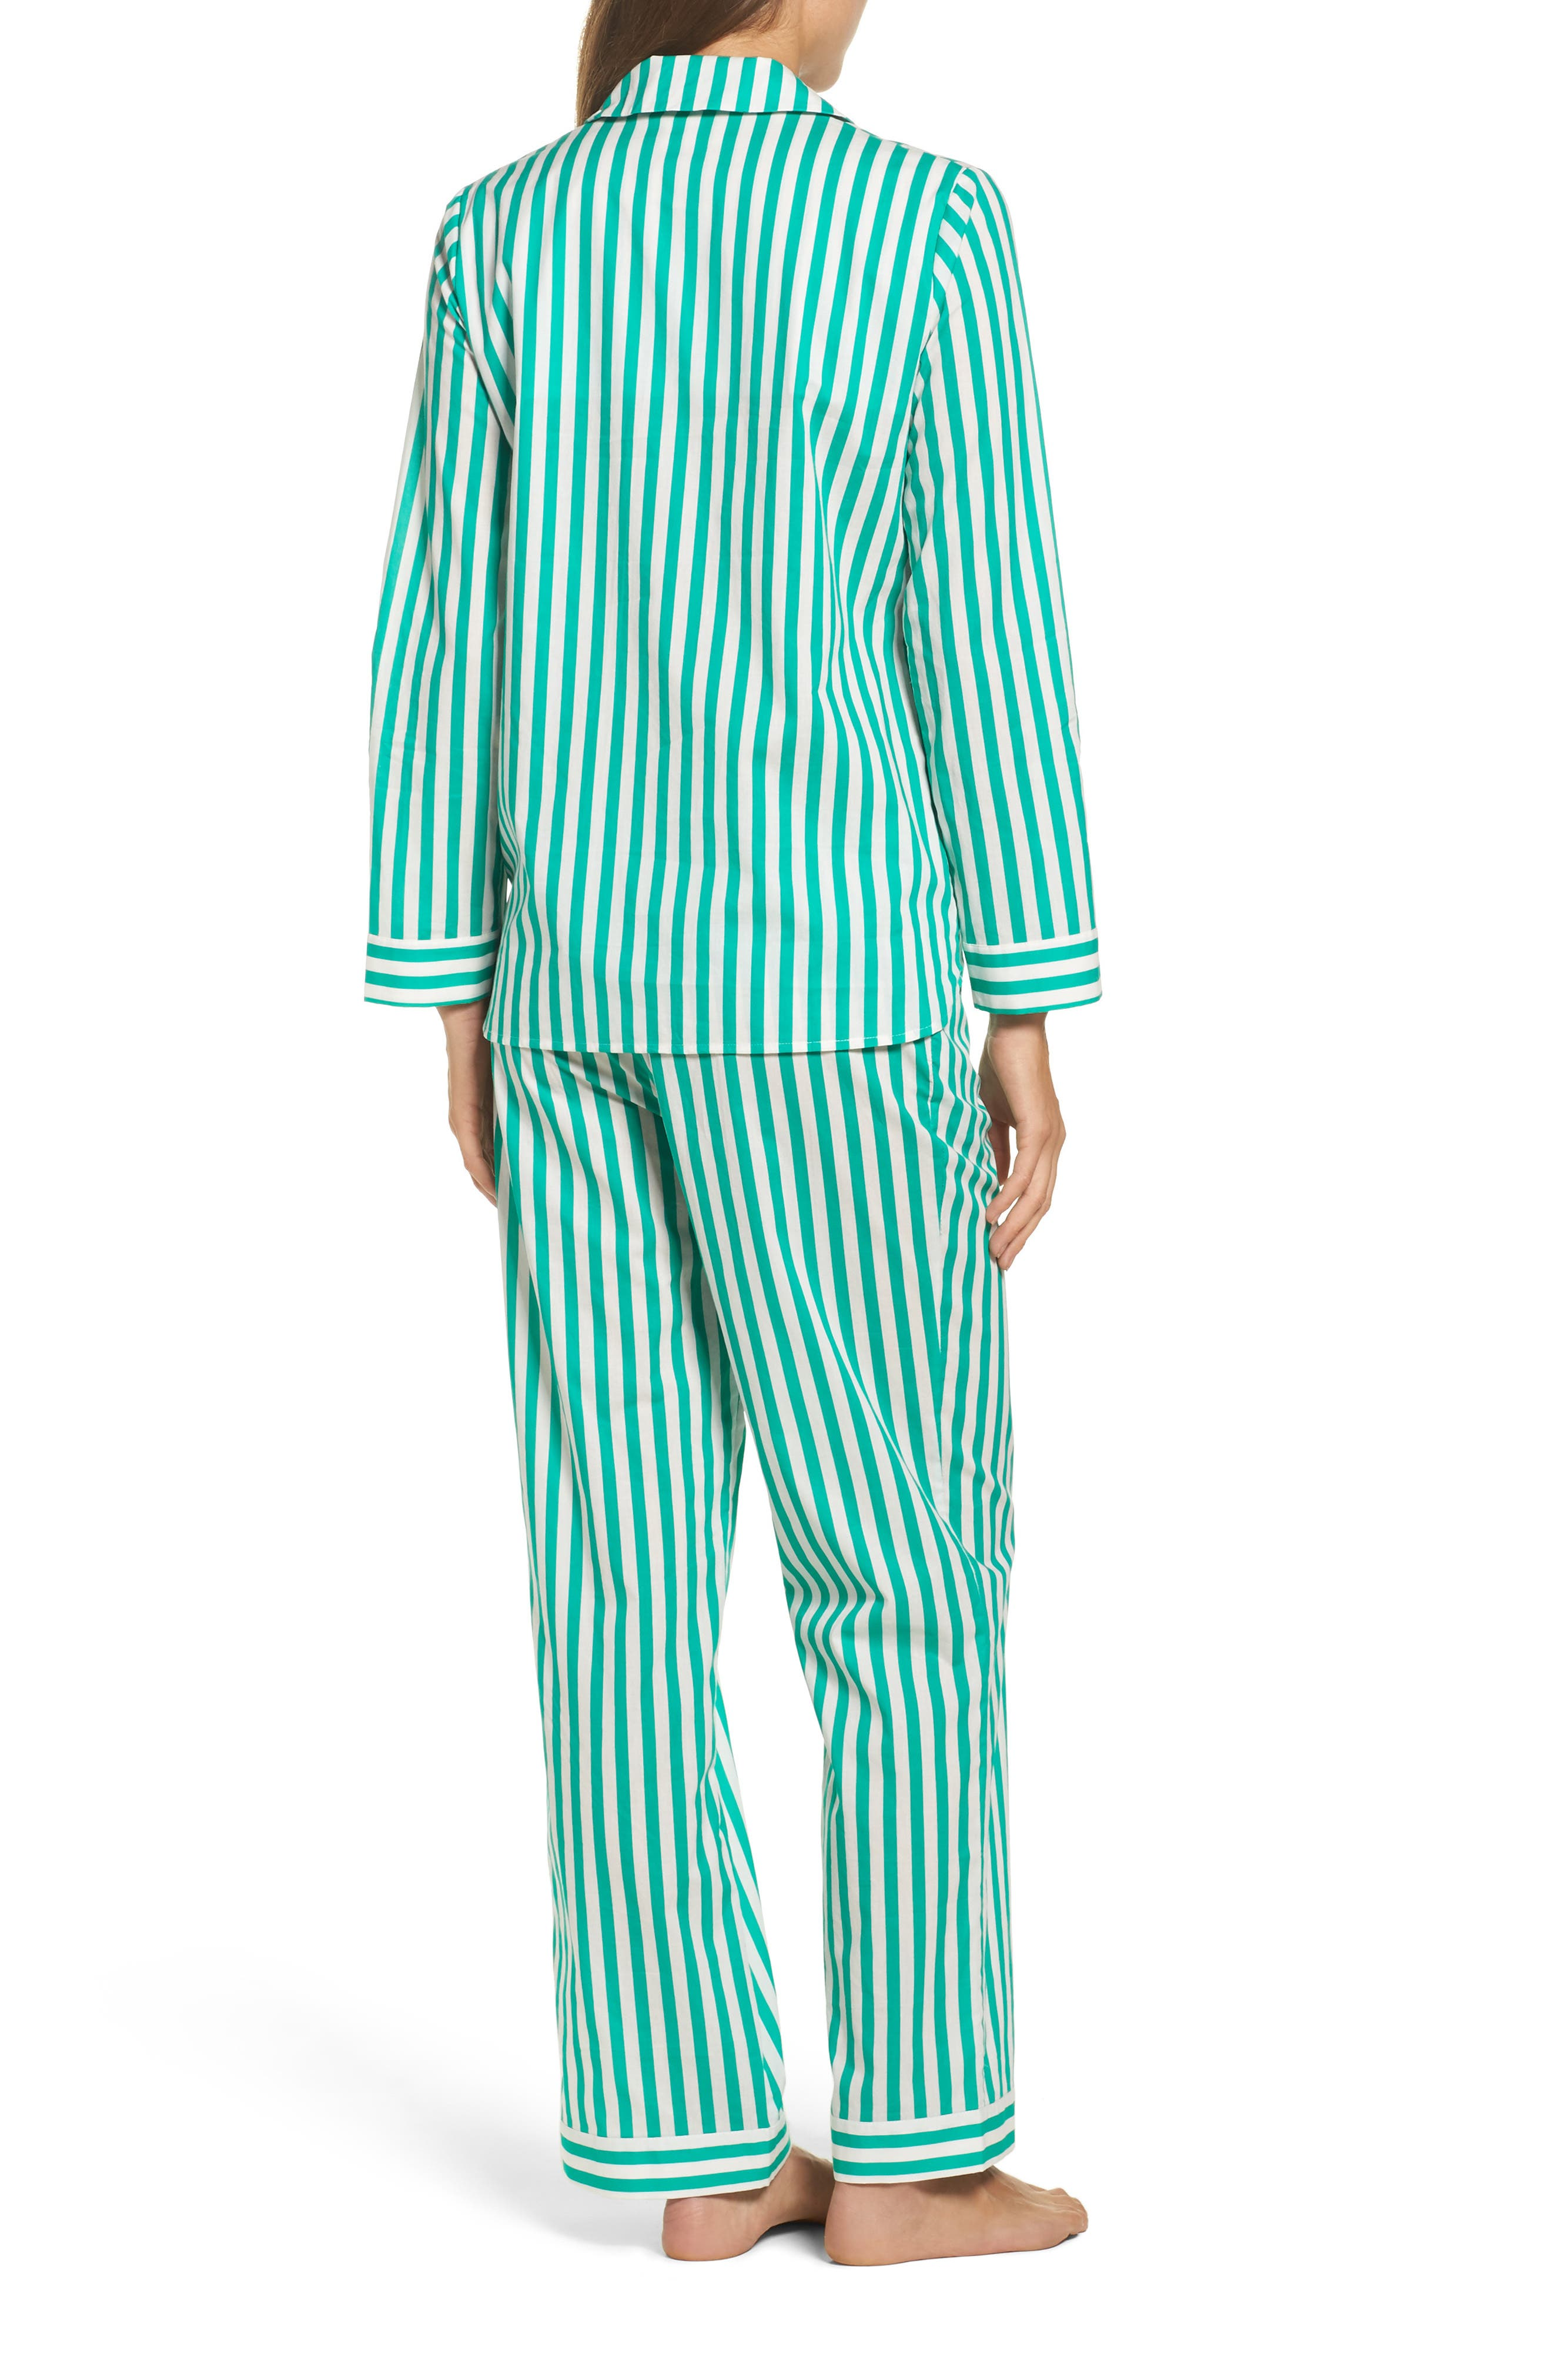 Classic Stripe Cotton Pajamas,                             Alternate thumbnail 2, color,                             300